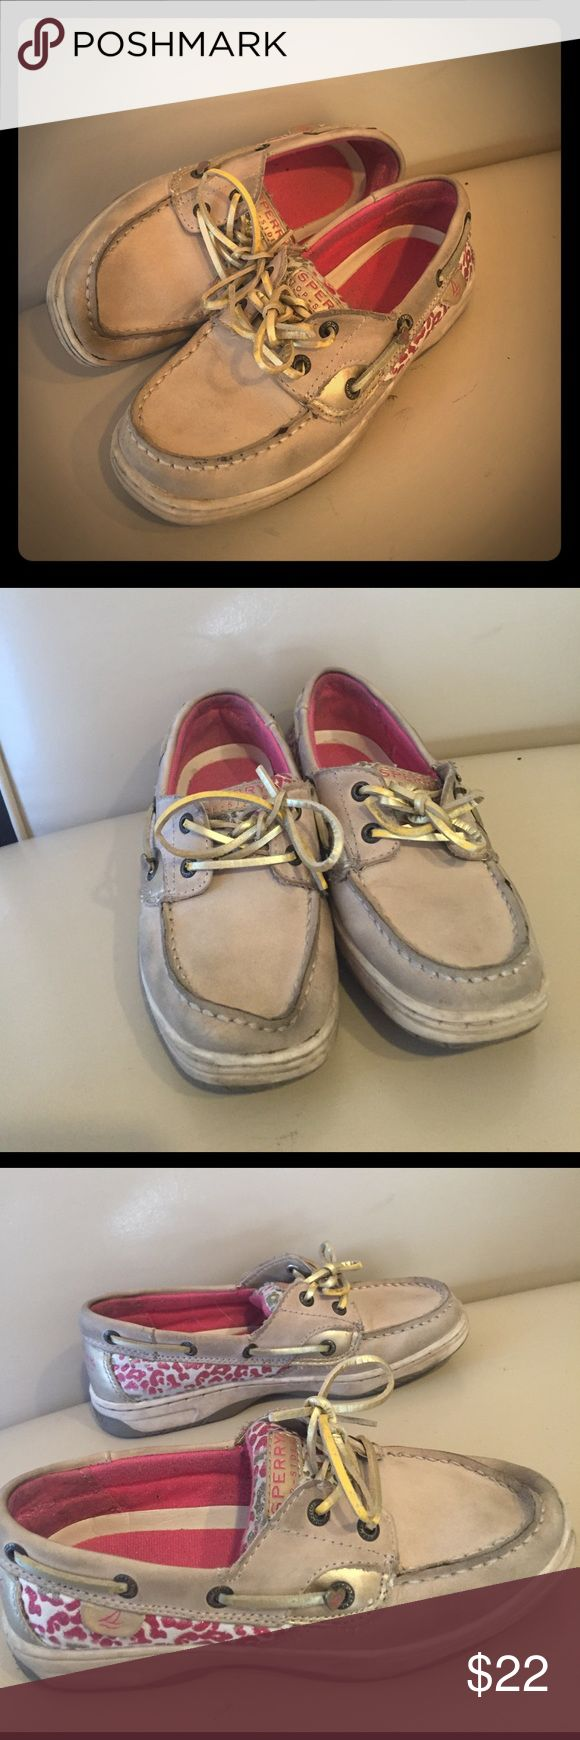 Girls Sperry Top-Sider Boat Shoes Size 1.5 Pink Adorable girls Sperrys size 1.5M brown with pink cheetah print! Good used condition, see pictures for signs of wear. Sperry Top-Sider Shoes Sneakers